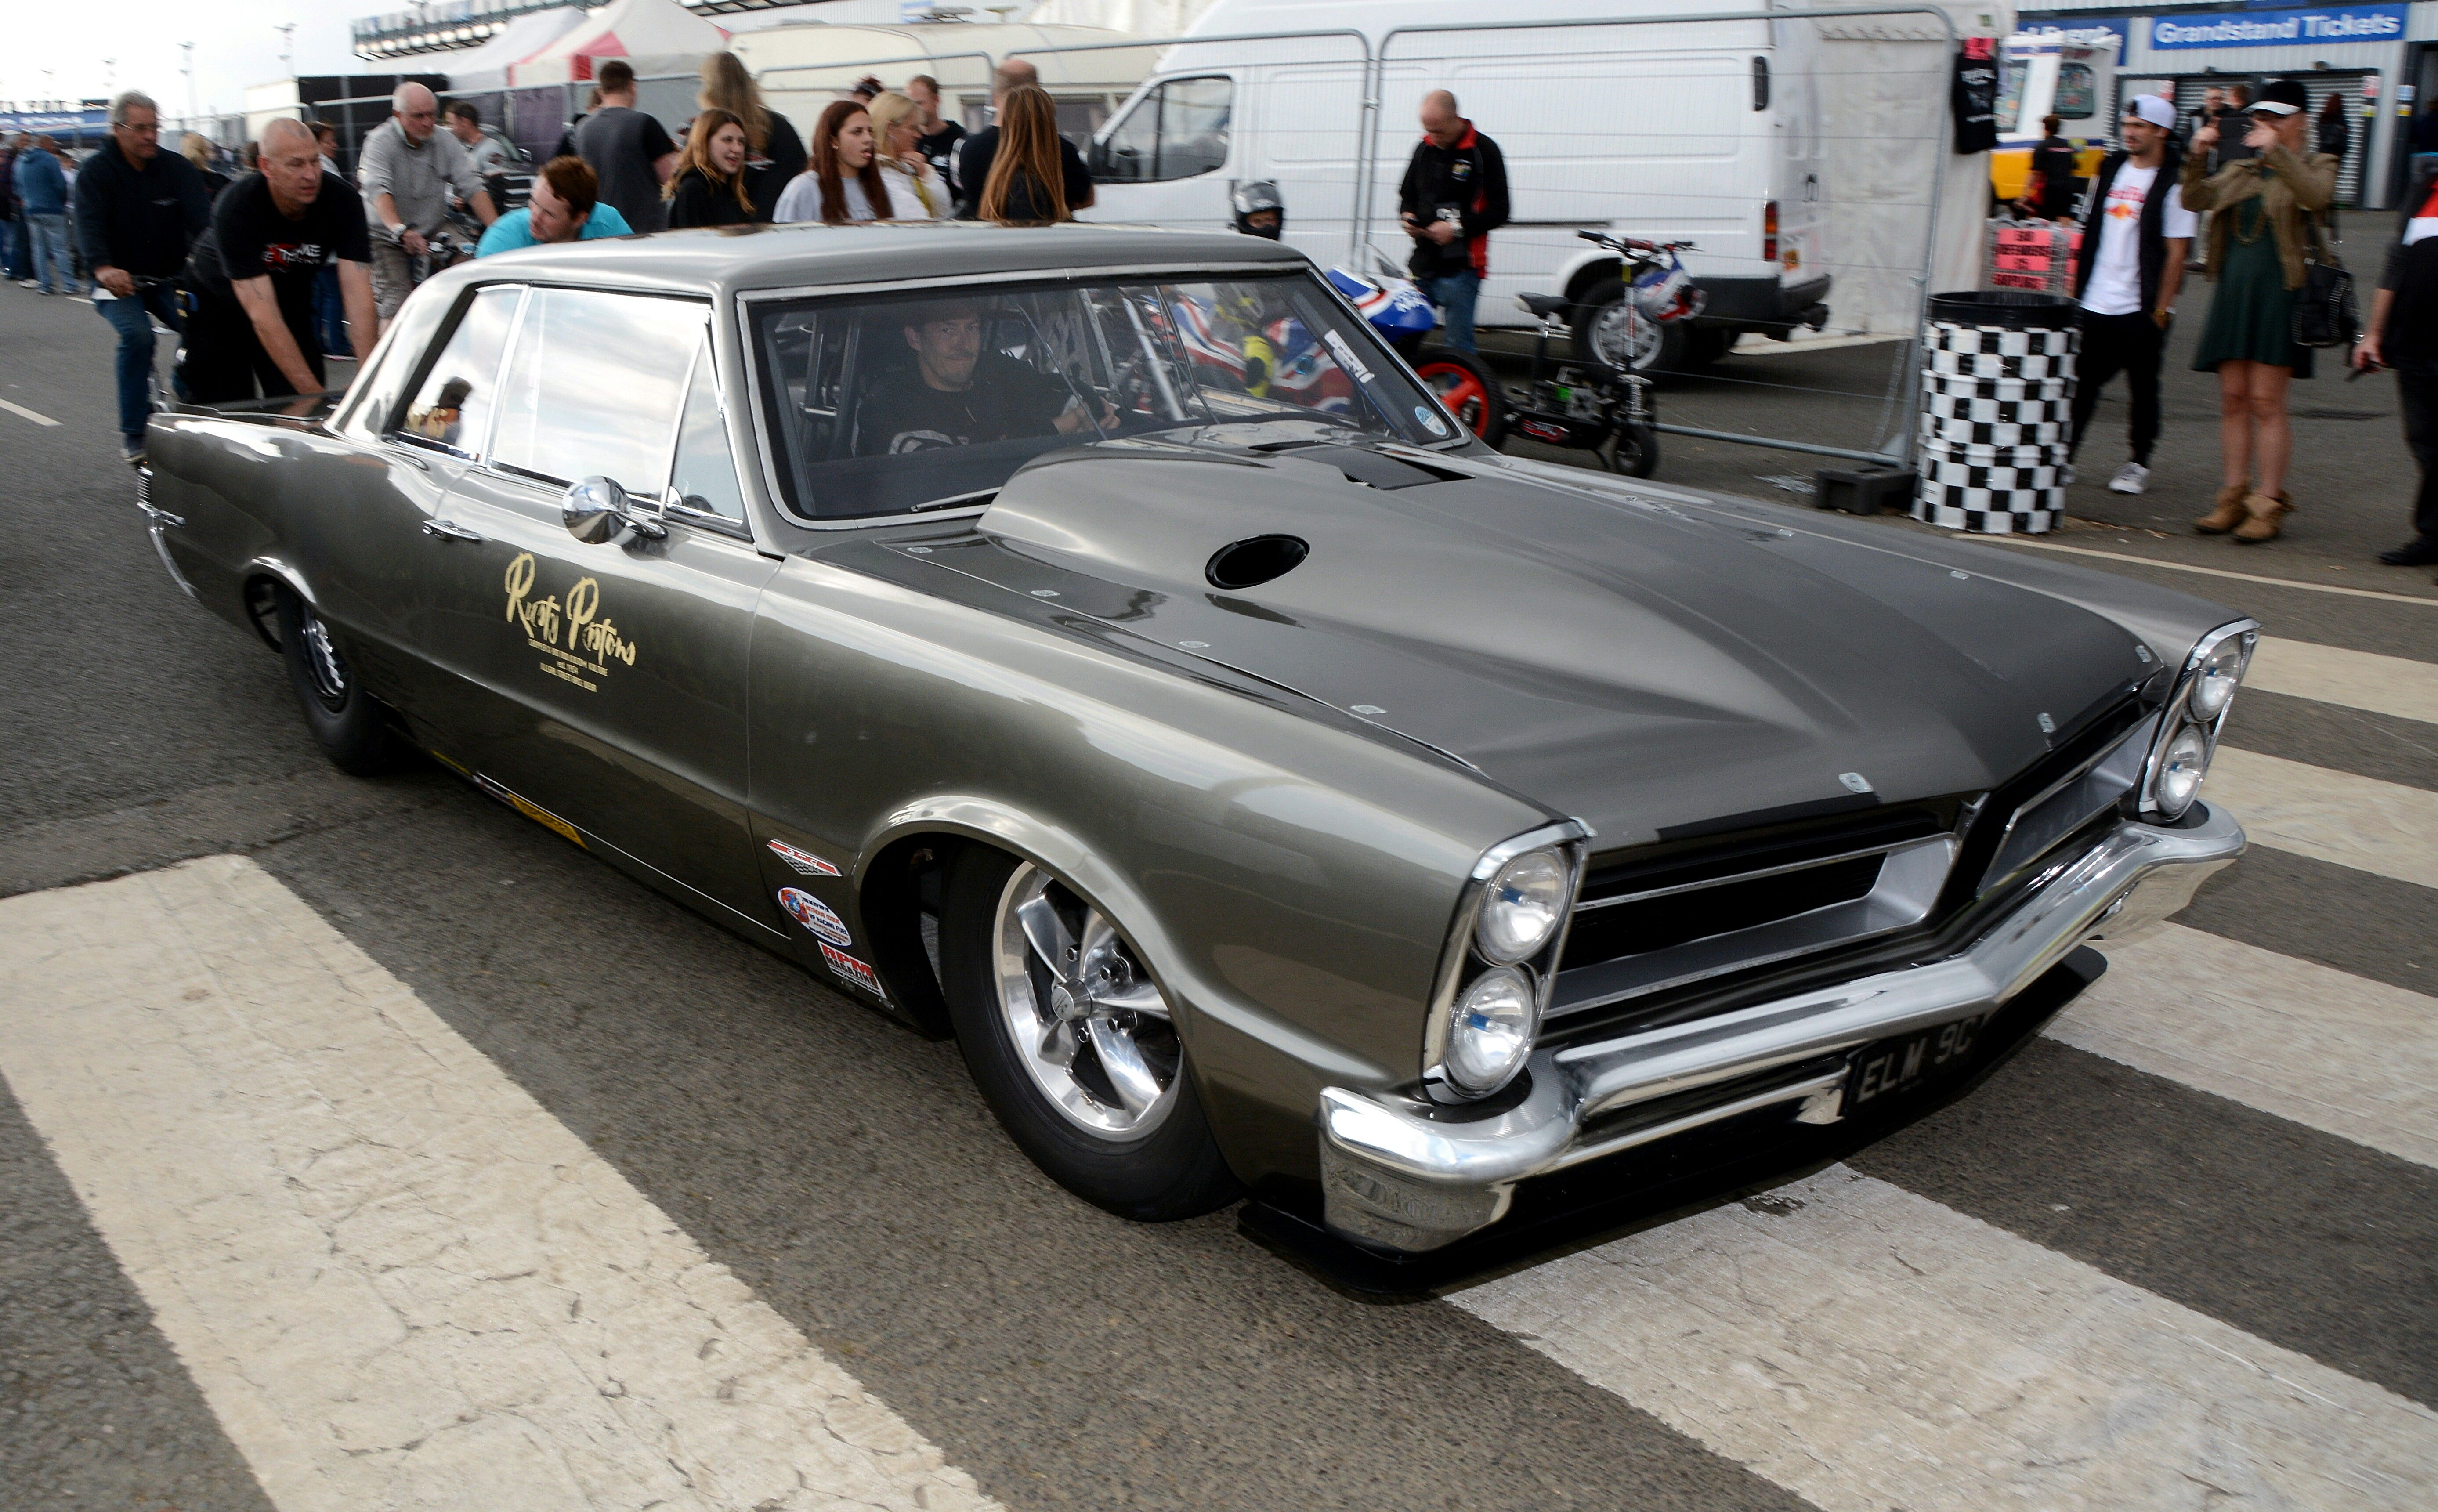 Mark todd 1965 project gto 580ci aluminum donovan big block with twin 88mm turbo s